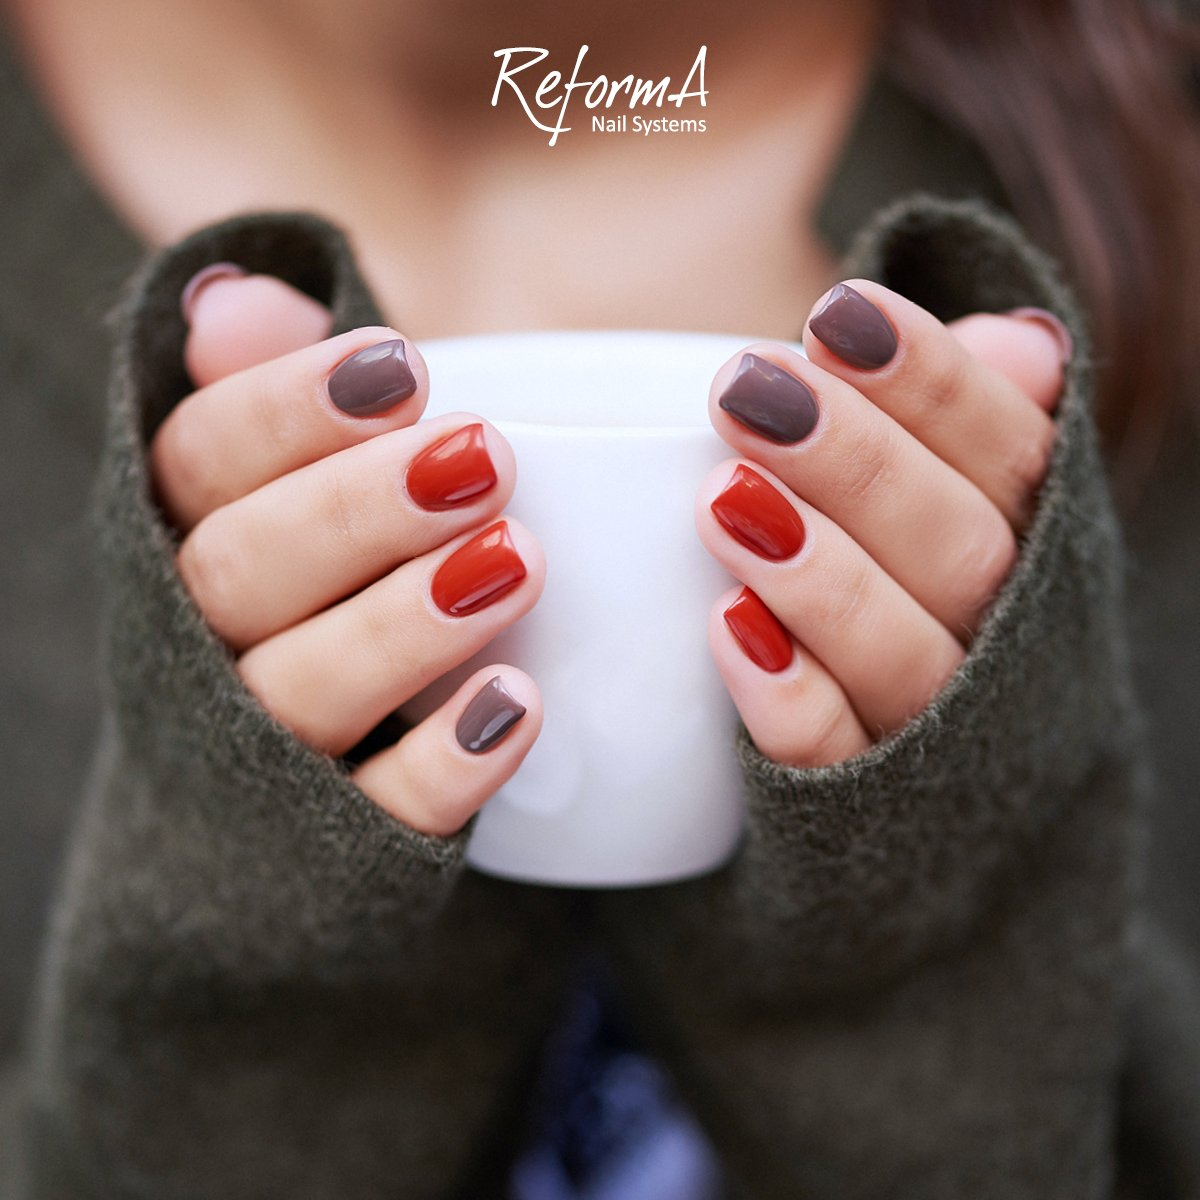 Reforma Nail System On Twitter Lifes Too Short To Wear Boring